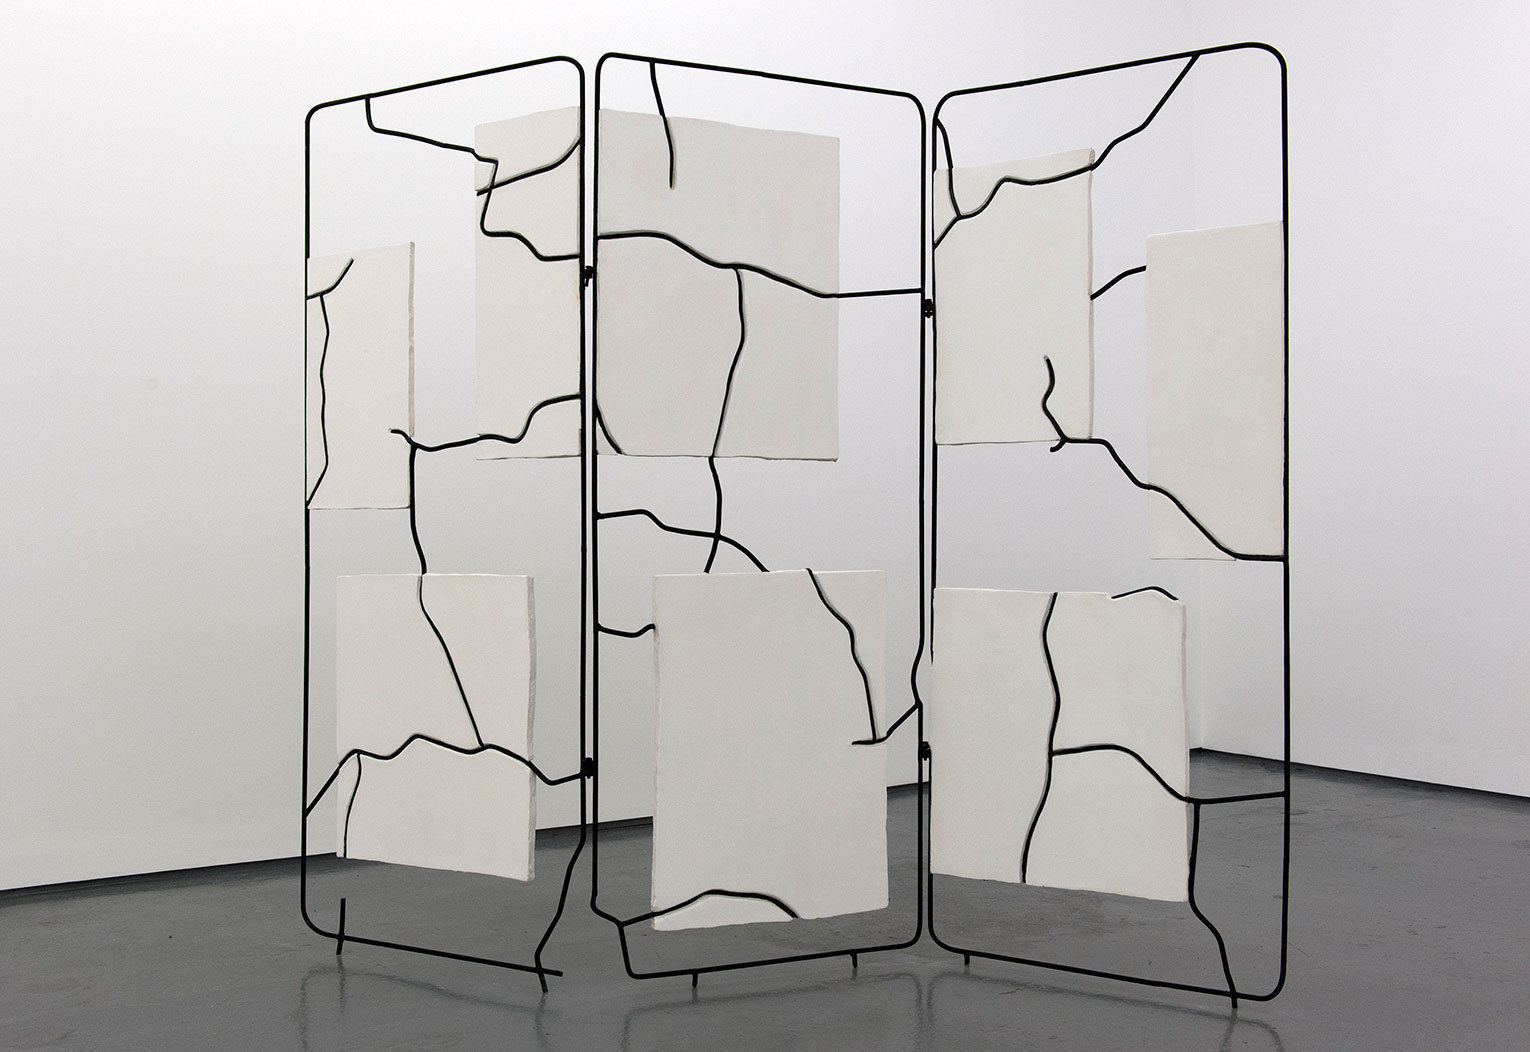 <b>Title: </b>Length of Leaning<br /><b>Year: </b>2014<br /><b>Medium: </b>Plaster, steel, and paint<br /><b>Size: </b>165 x 210 x 20 cm